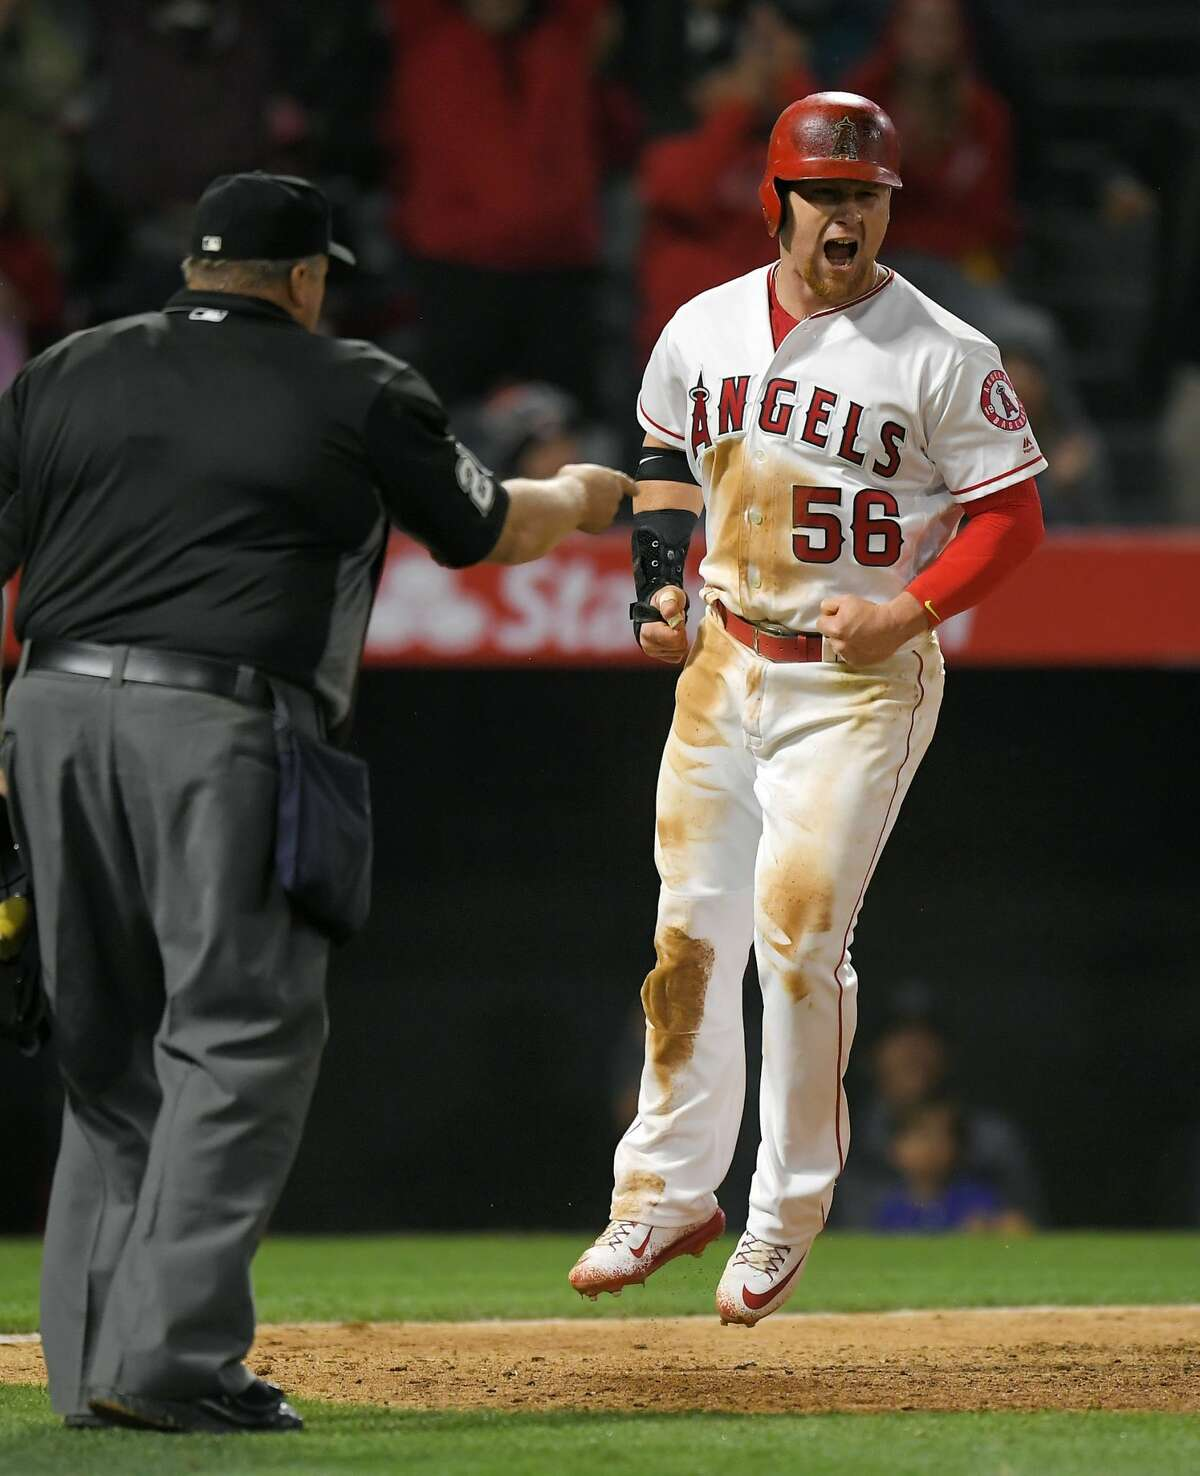 Los Angeles Angels' Kole Calhoun, right, celebrates after scoring the winning run on a single by Andrelton Simmons during the ninth inning of a baseball game against the Houston Astros, Saturday, May 6, 2017, in Anaheim, Calif. The Angels won 2-1. (AP Photo/Mark J. Terrill)